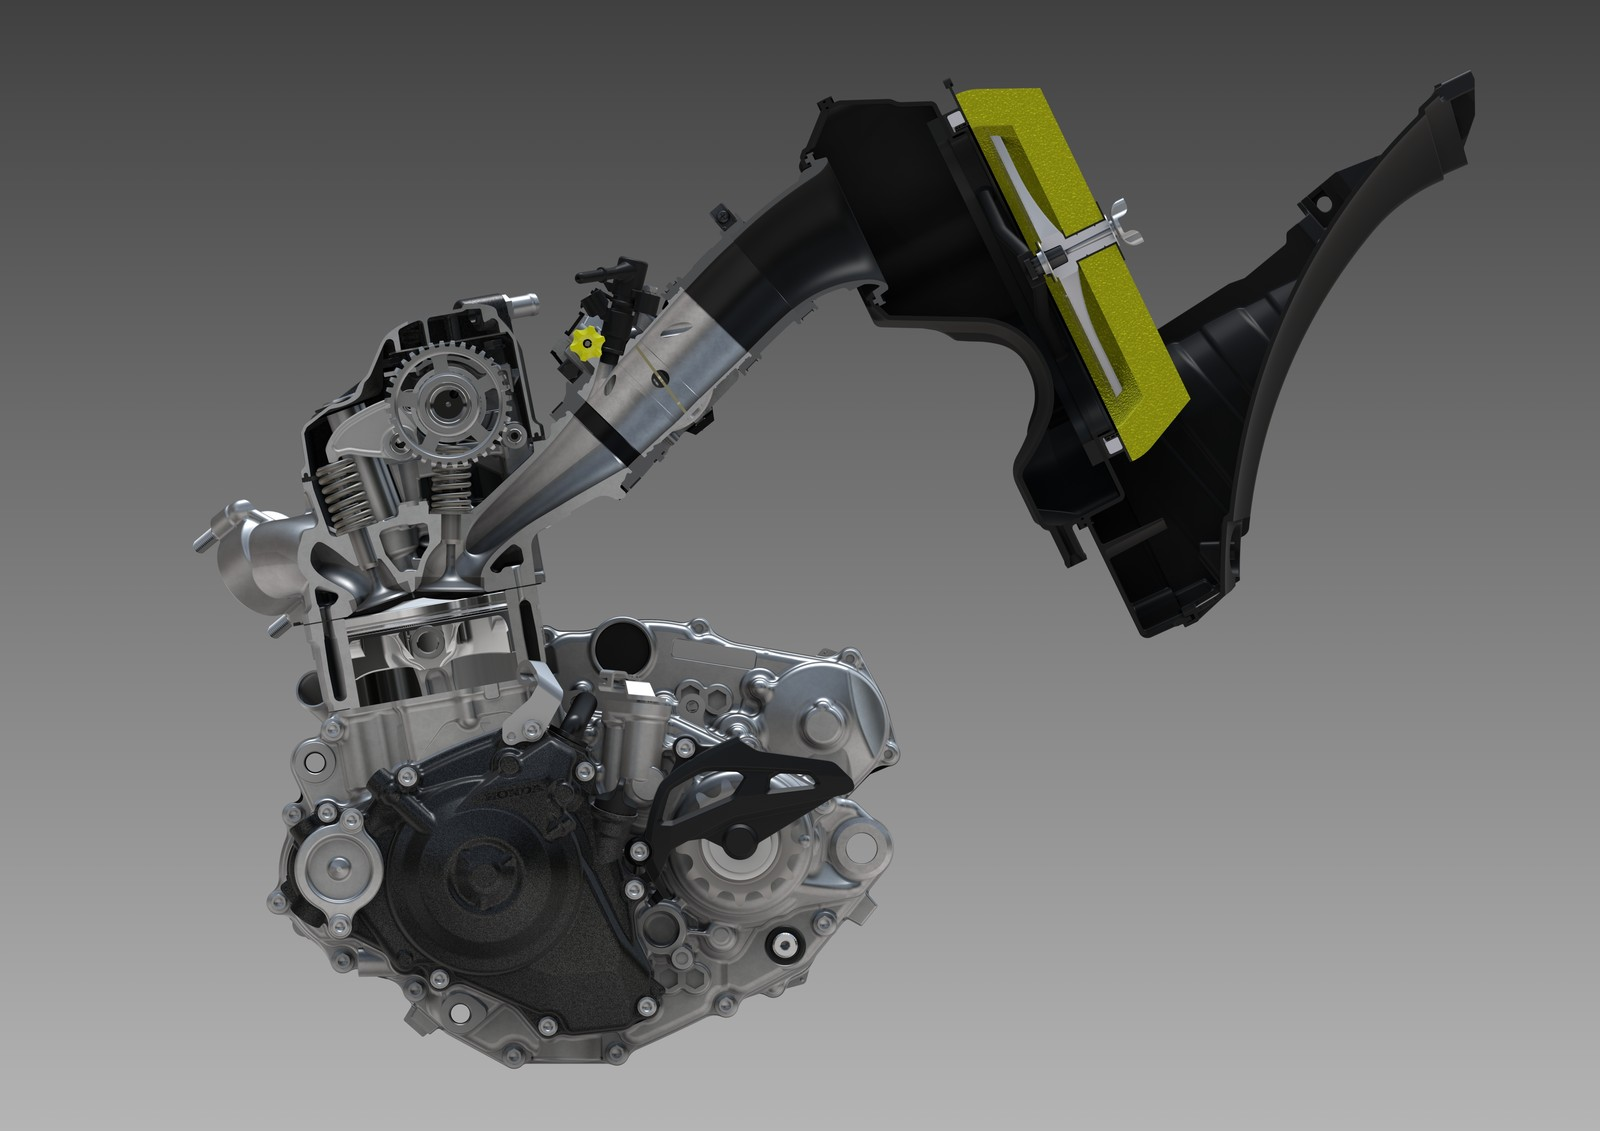 2017 Honda Crf450rx First Look Crf450r And 2011 Insight Engine Diagram Because Of This New Intake Design The Shock Layout Needed An Overhaul Top Mount For Was Moved 39mm Father Down In Frame Angle